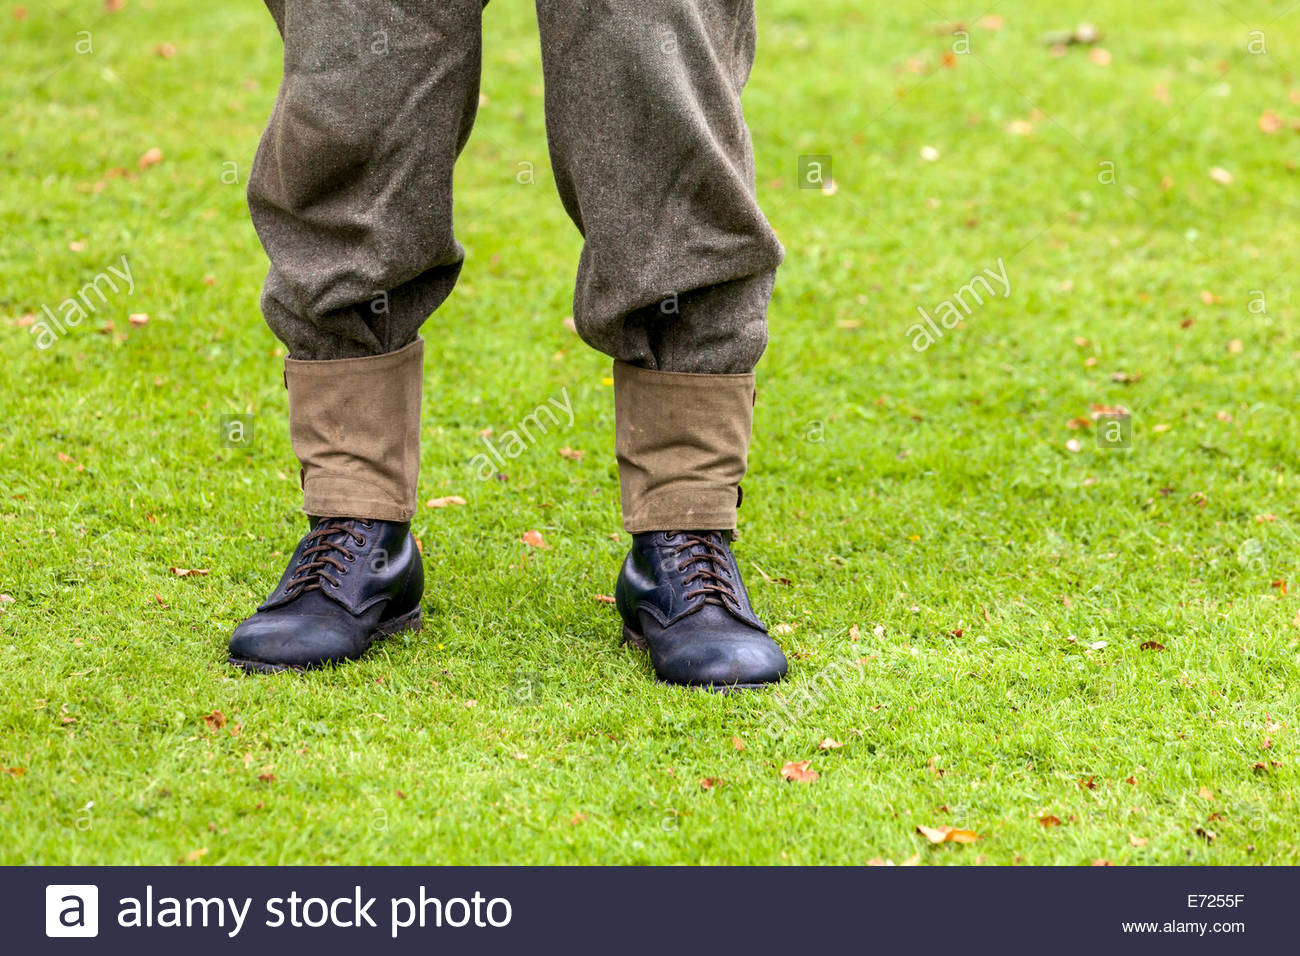 World War Two British Army Uniform - Gaiters and Boots - Stock Image